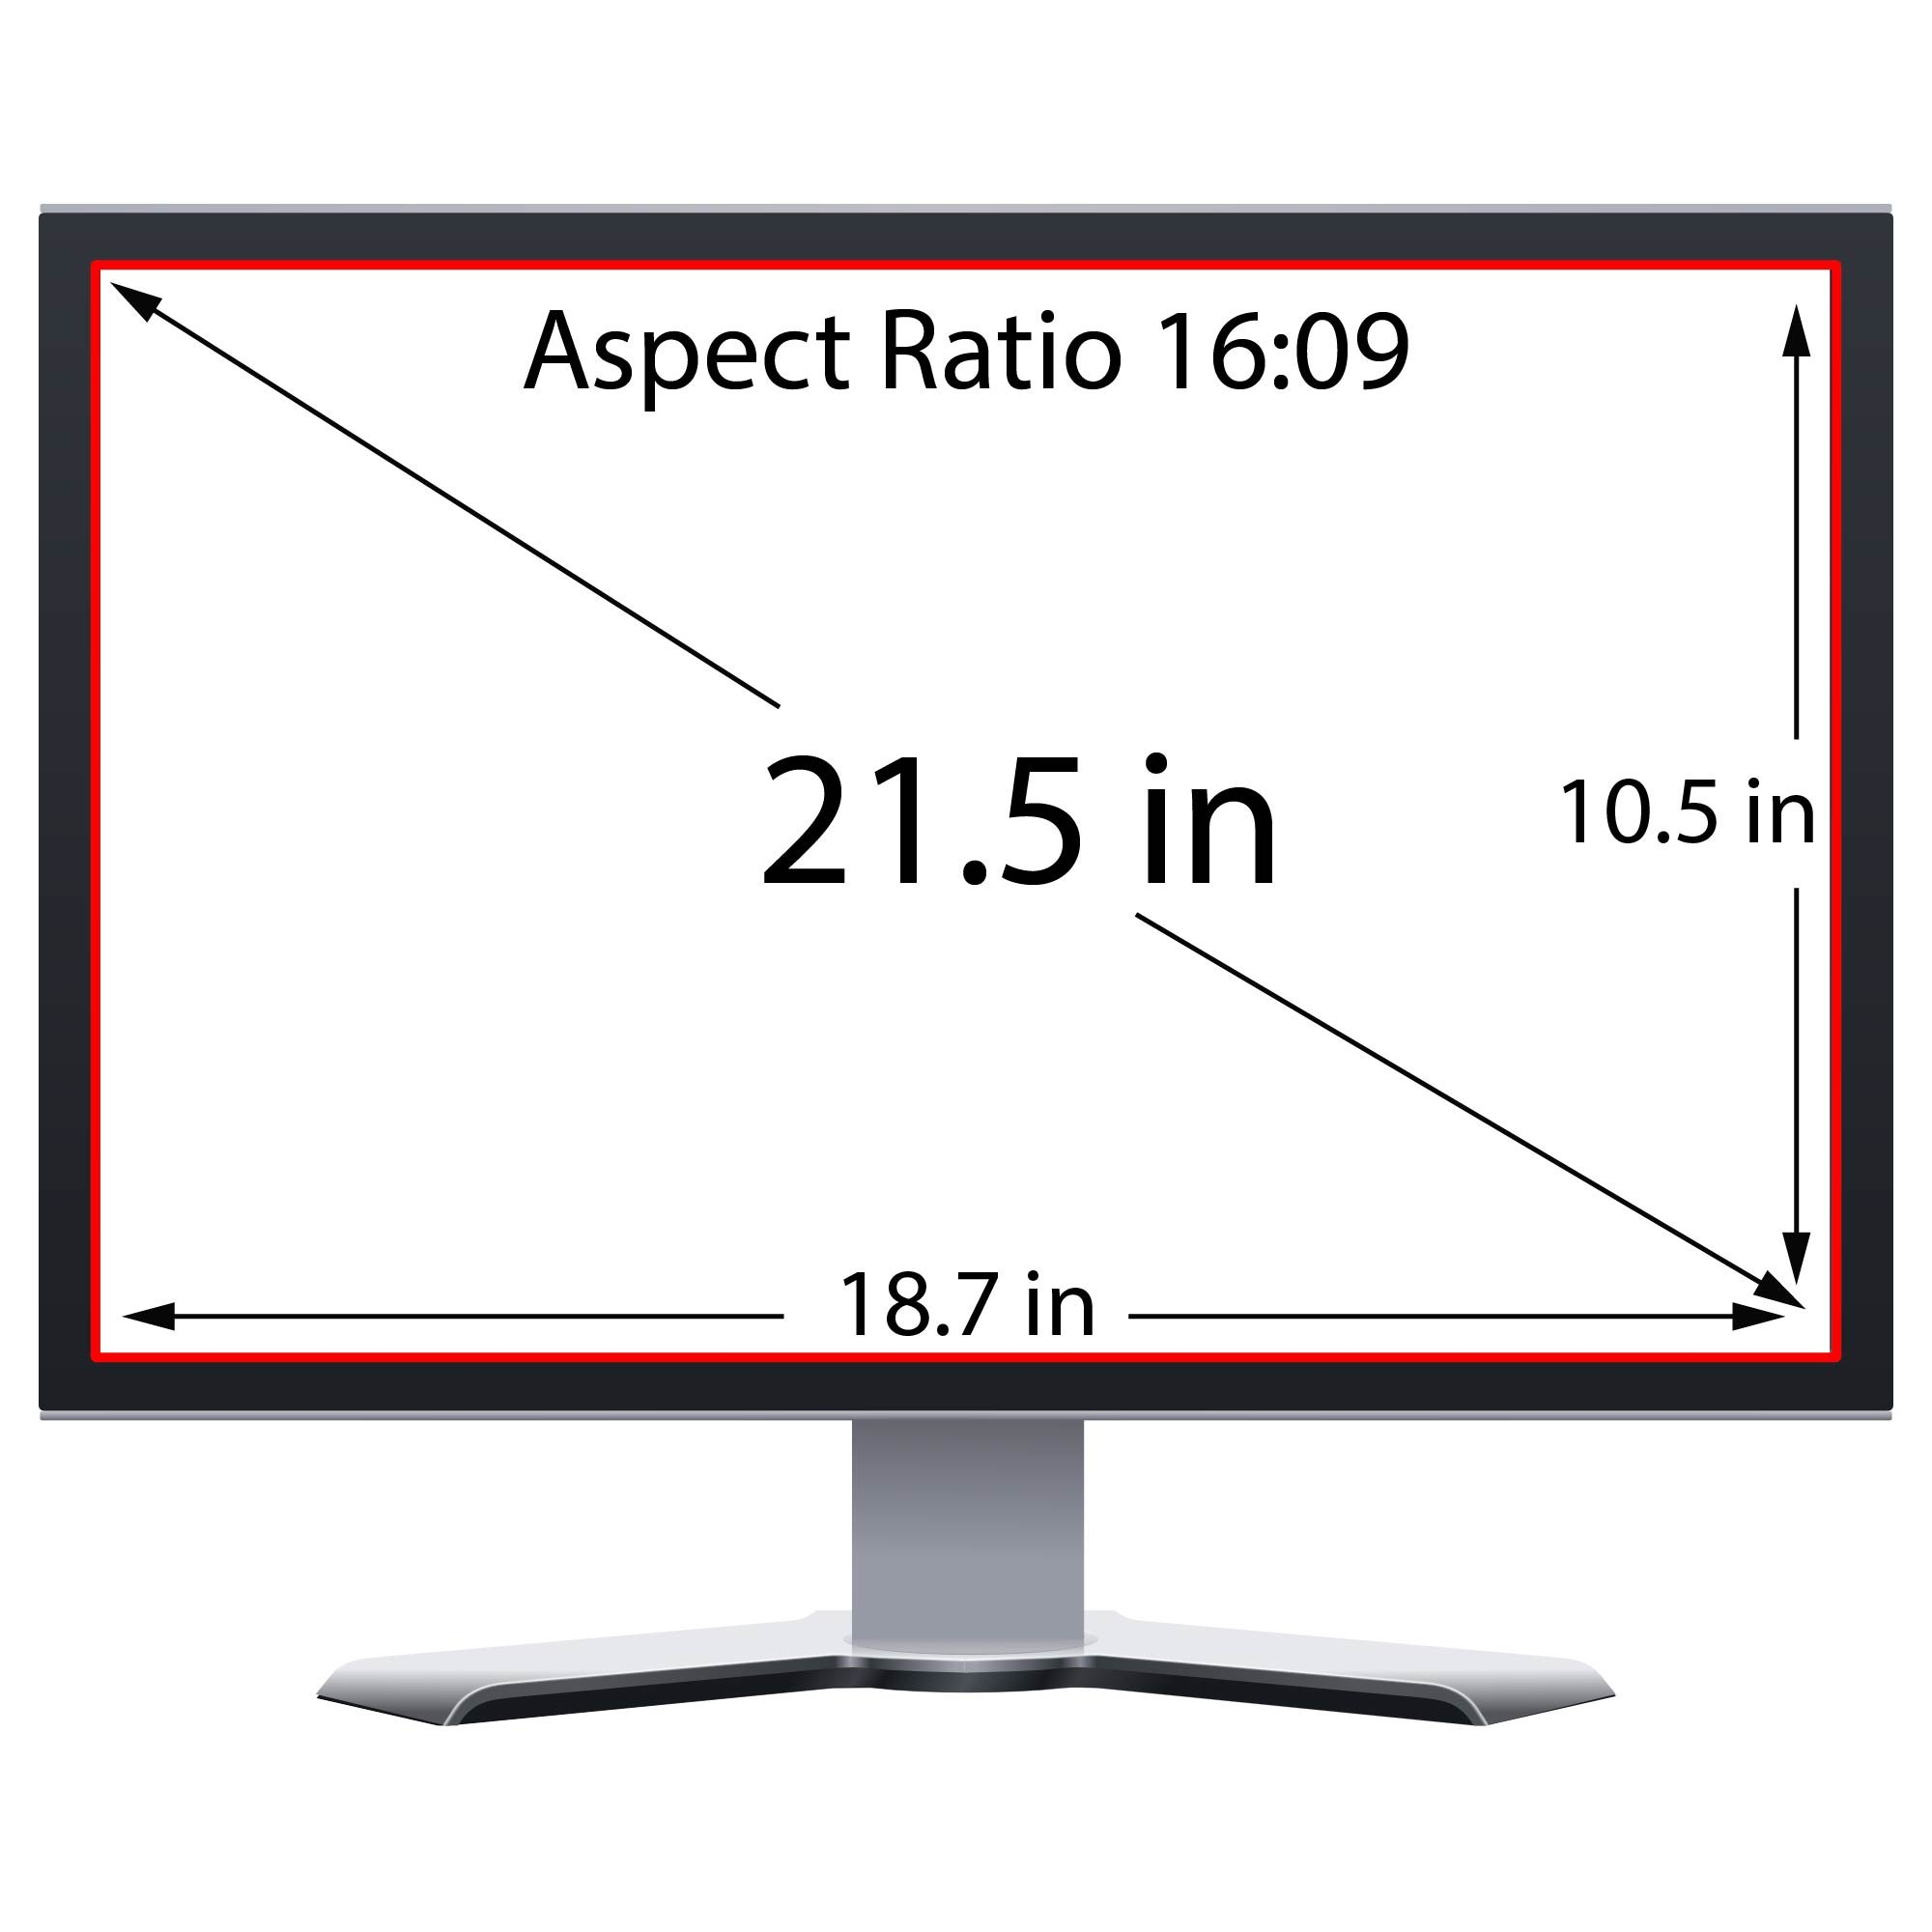 Privacy Screen Filter and Anti Glare for 21.5 Inches Desktop Computer Widescreen Monitor with Aspect Ratio 16:09 Please check Dimension Carefully